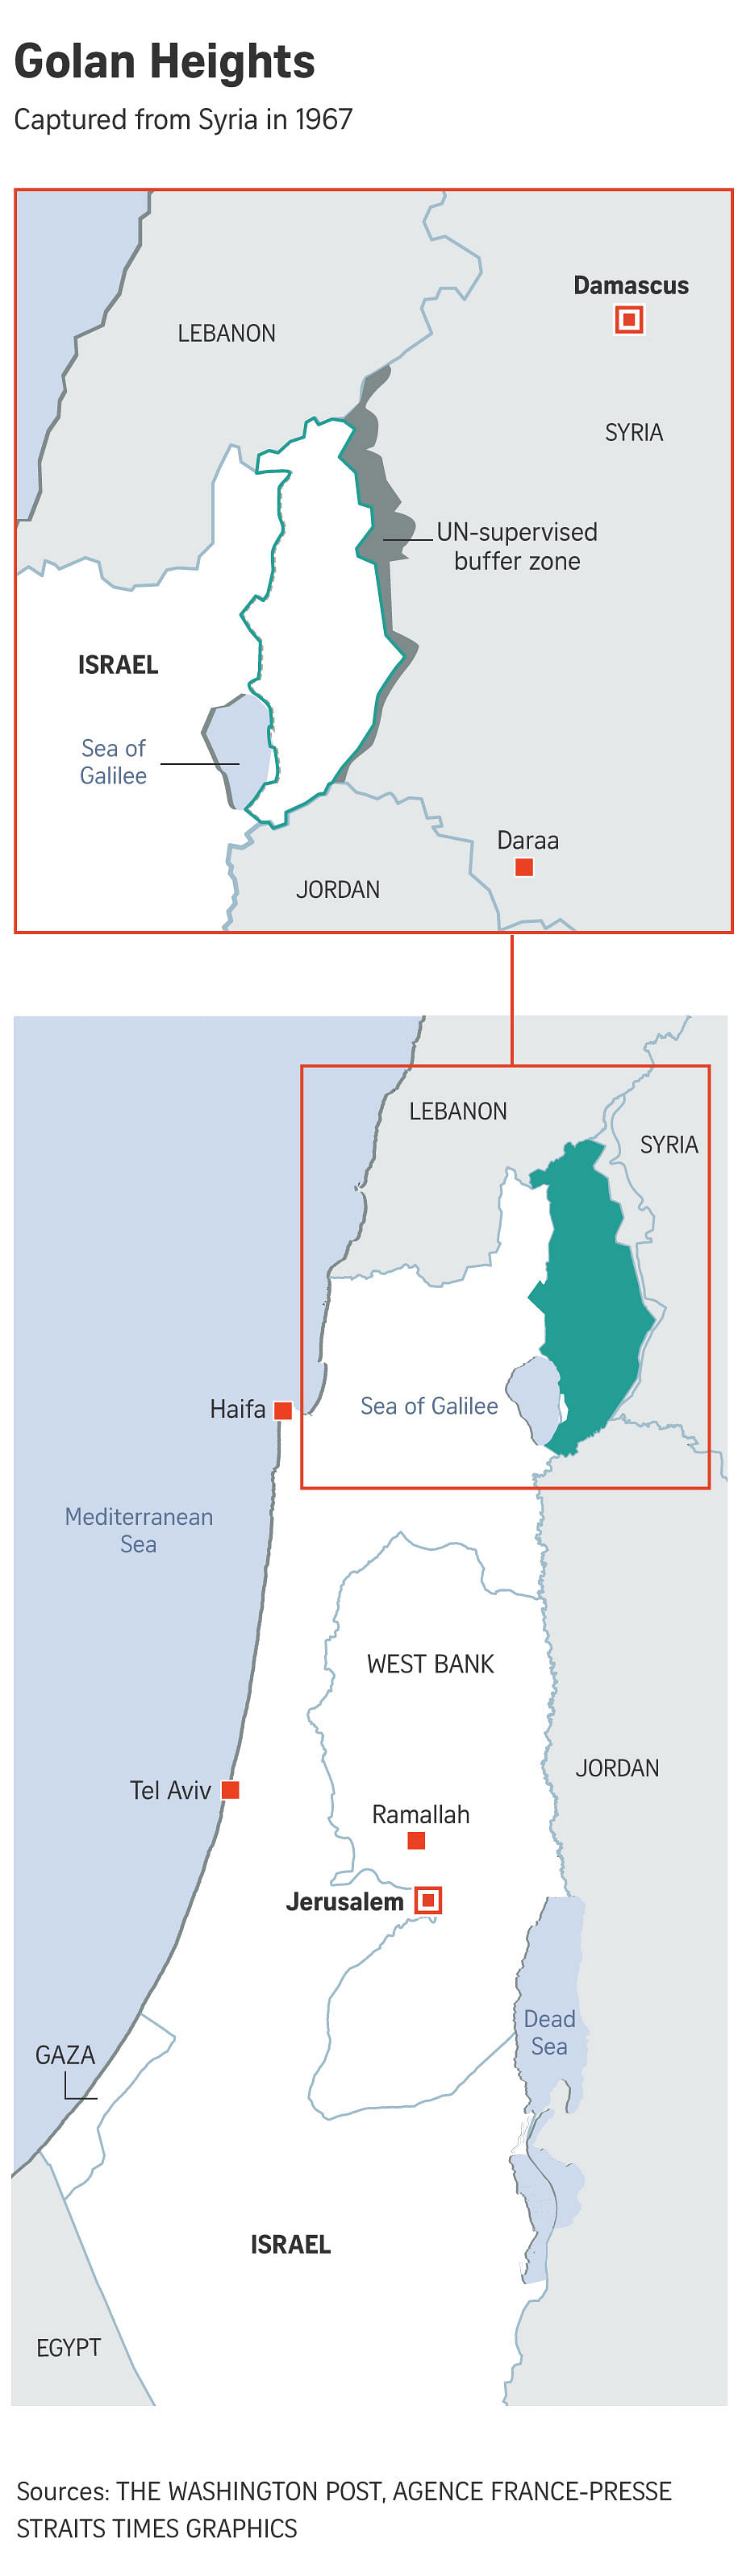 Golan Heights, an Israel-Syria flashpoint, Middle East News